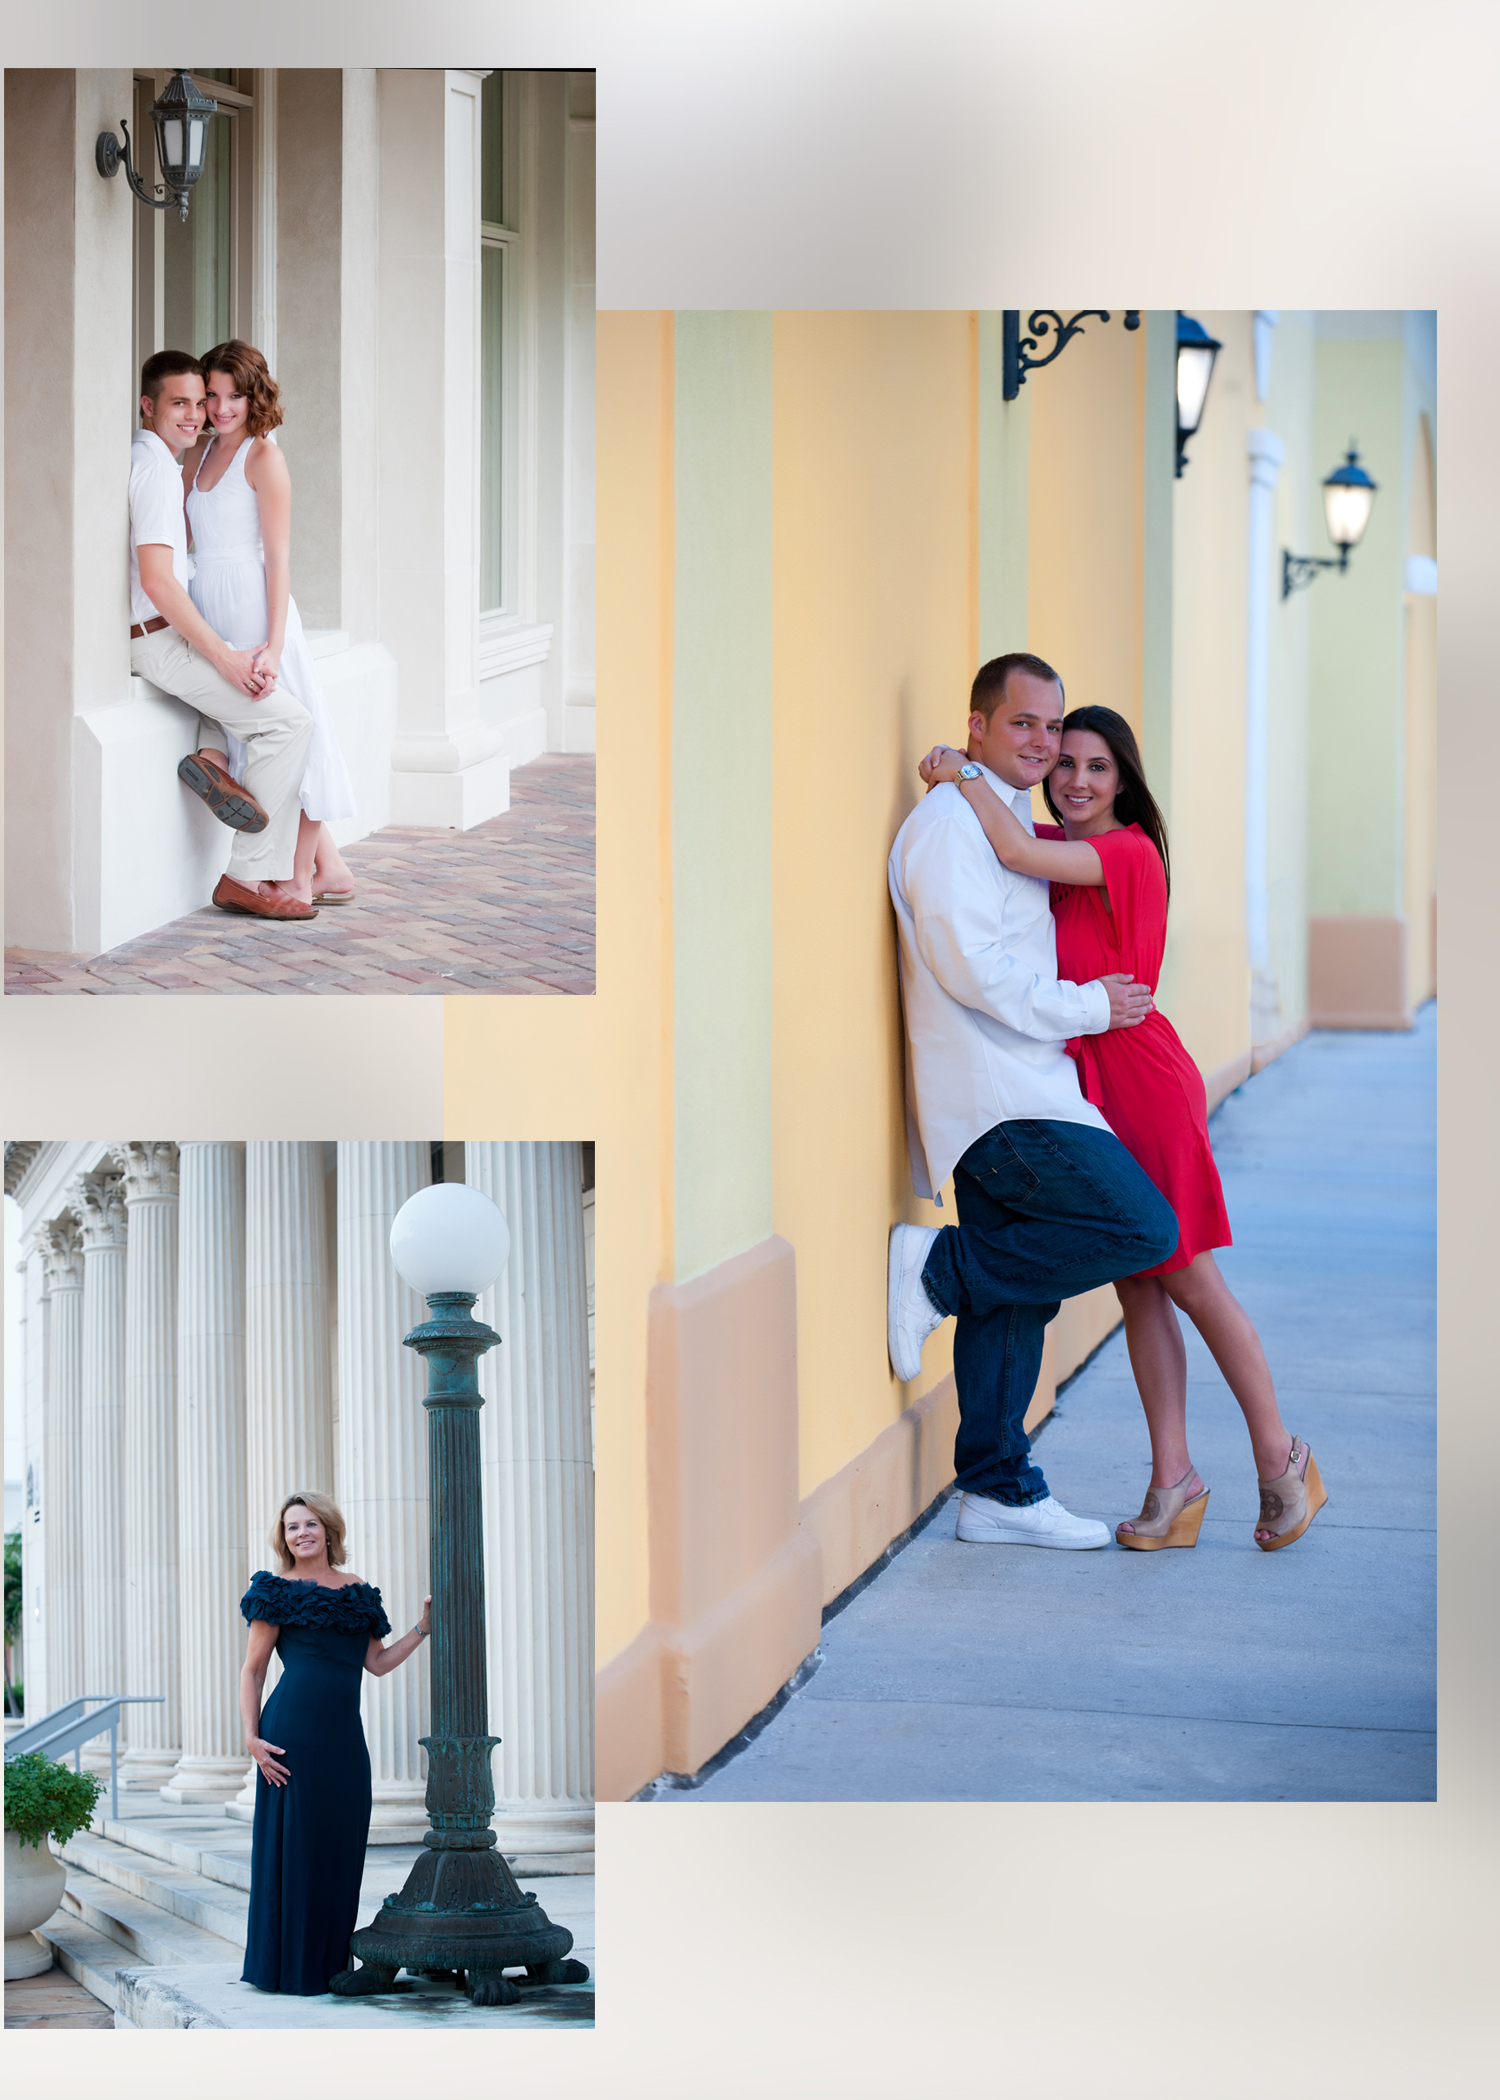 Family Portraits on location, downtown Sarasota, St. Petersburg Art Museum